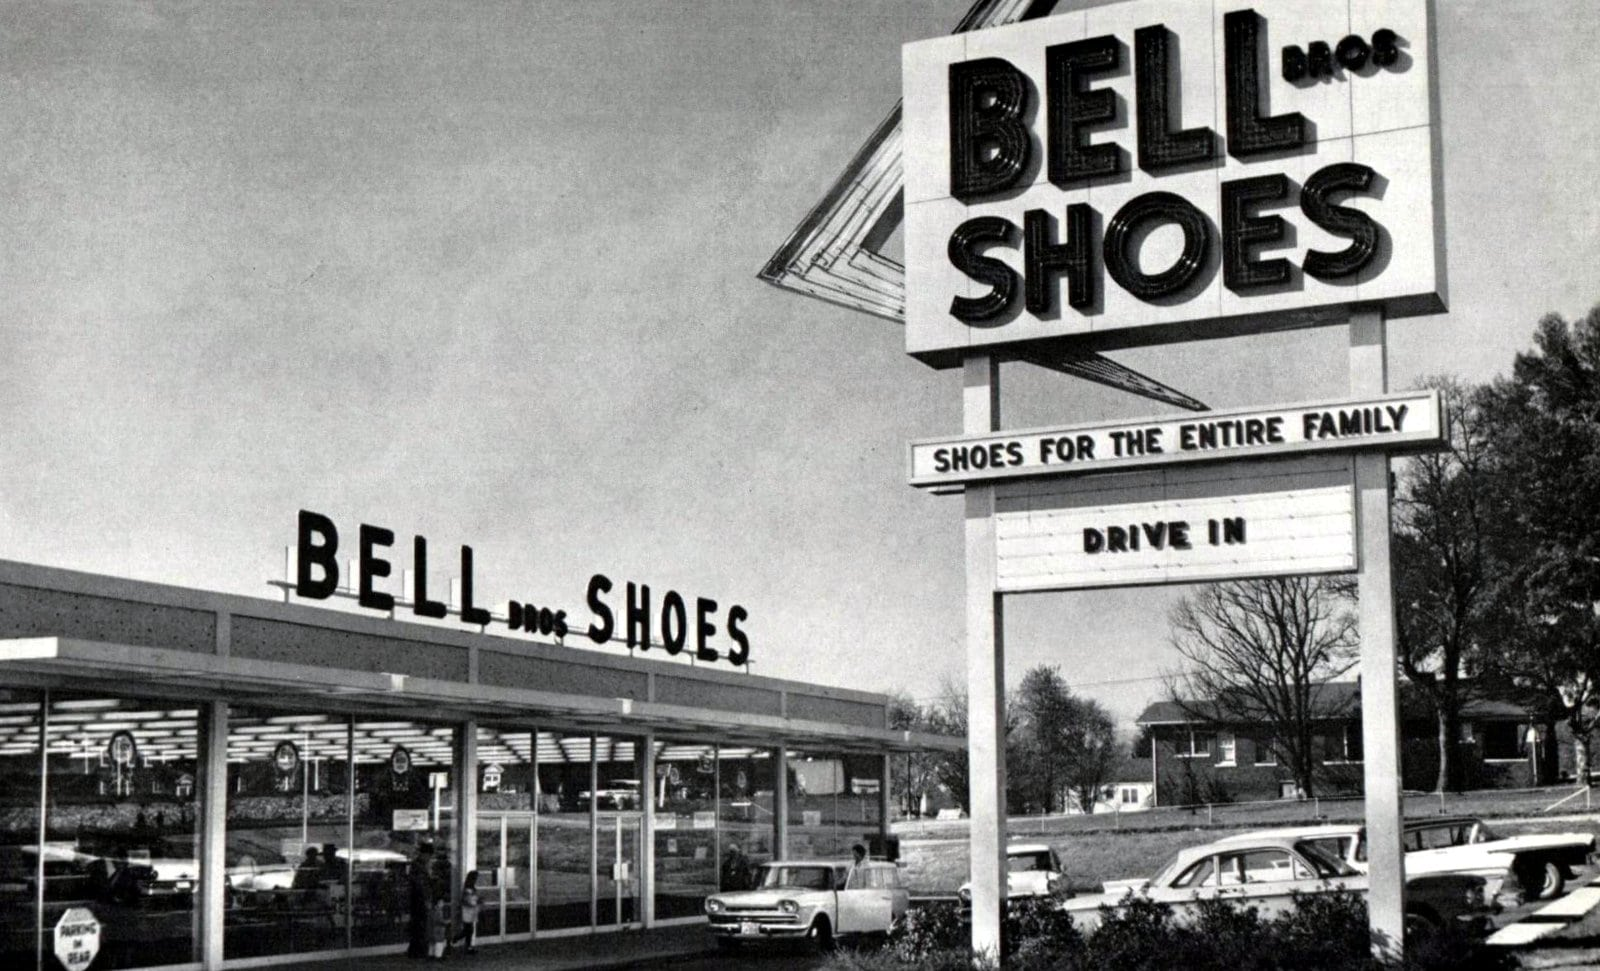 Bell Bros Shoe stores (1960)